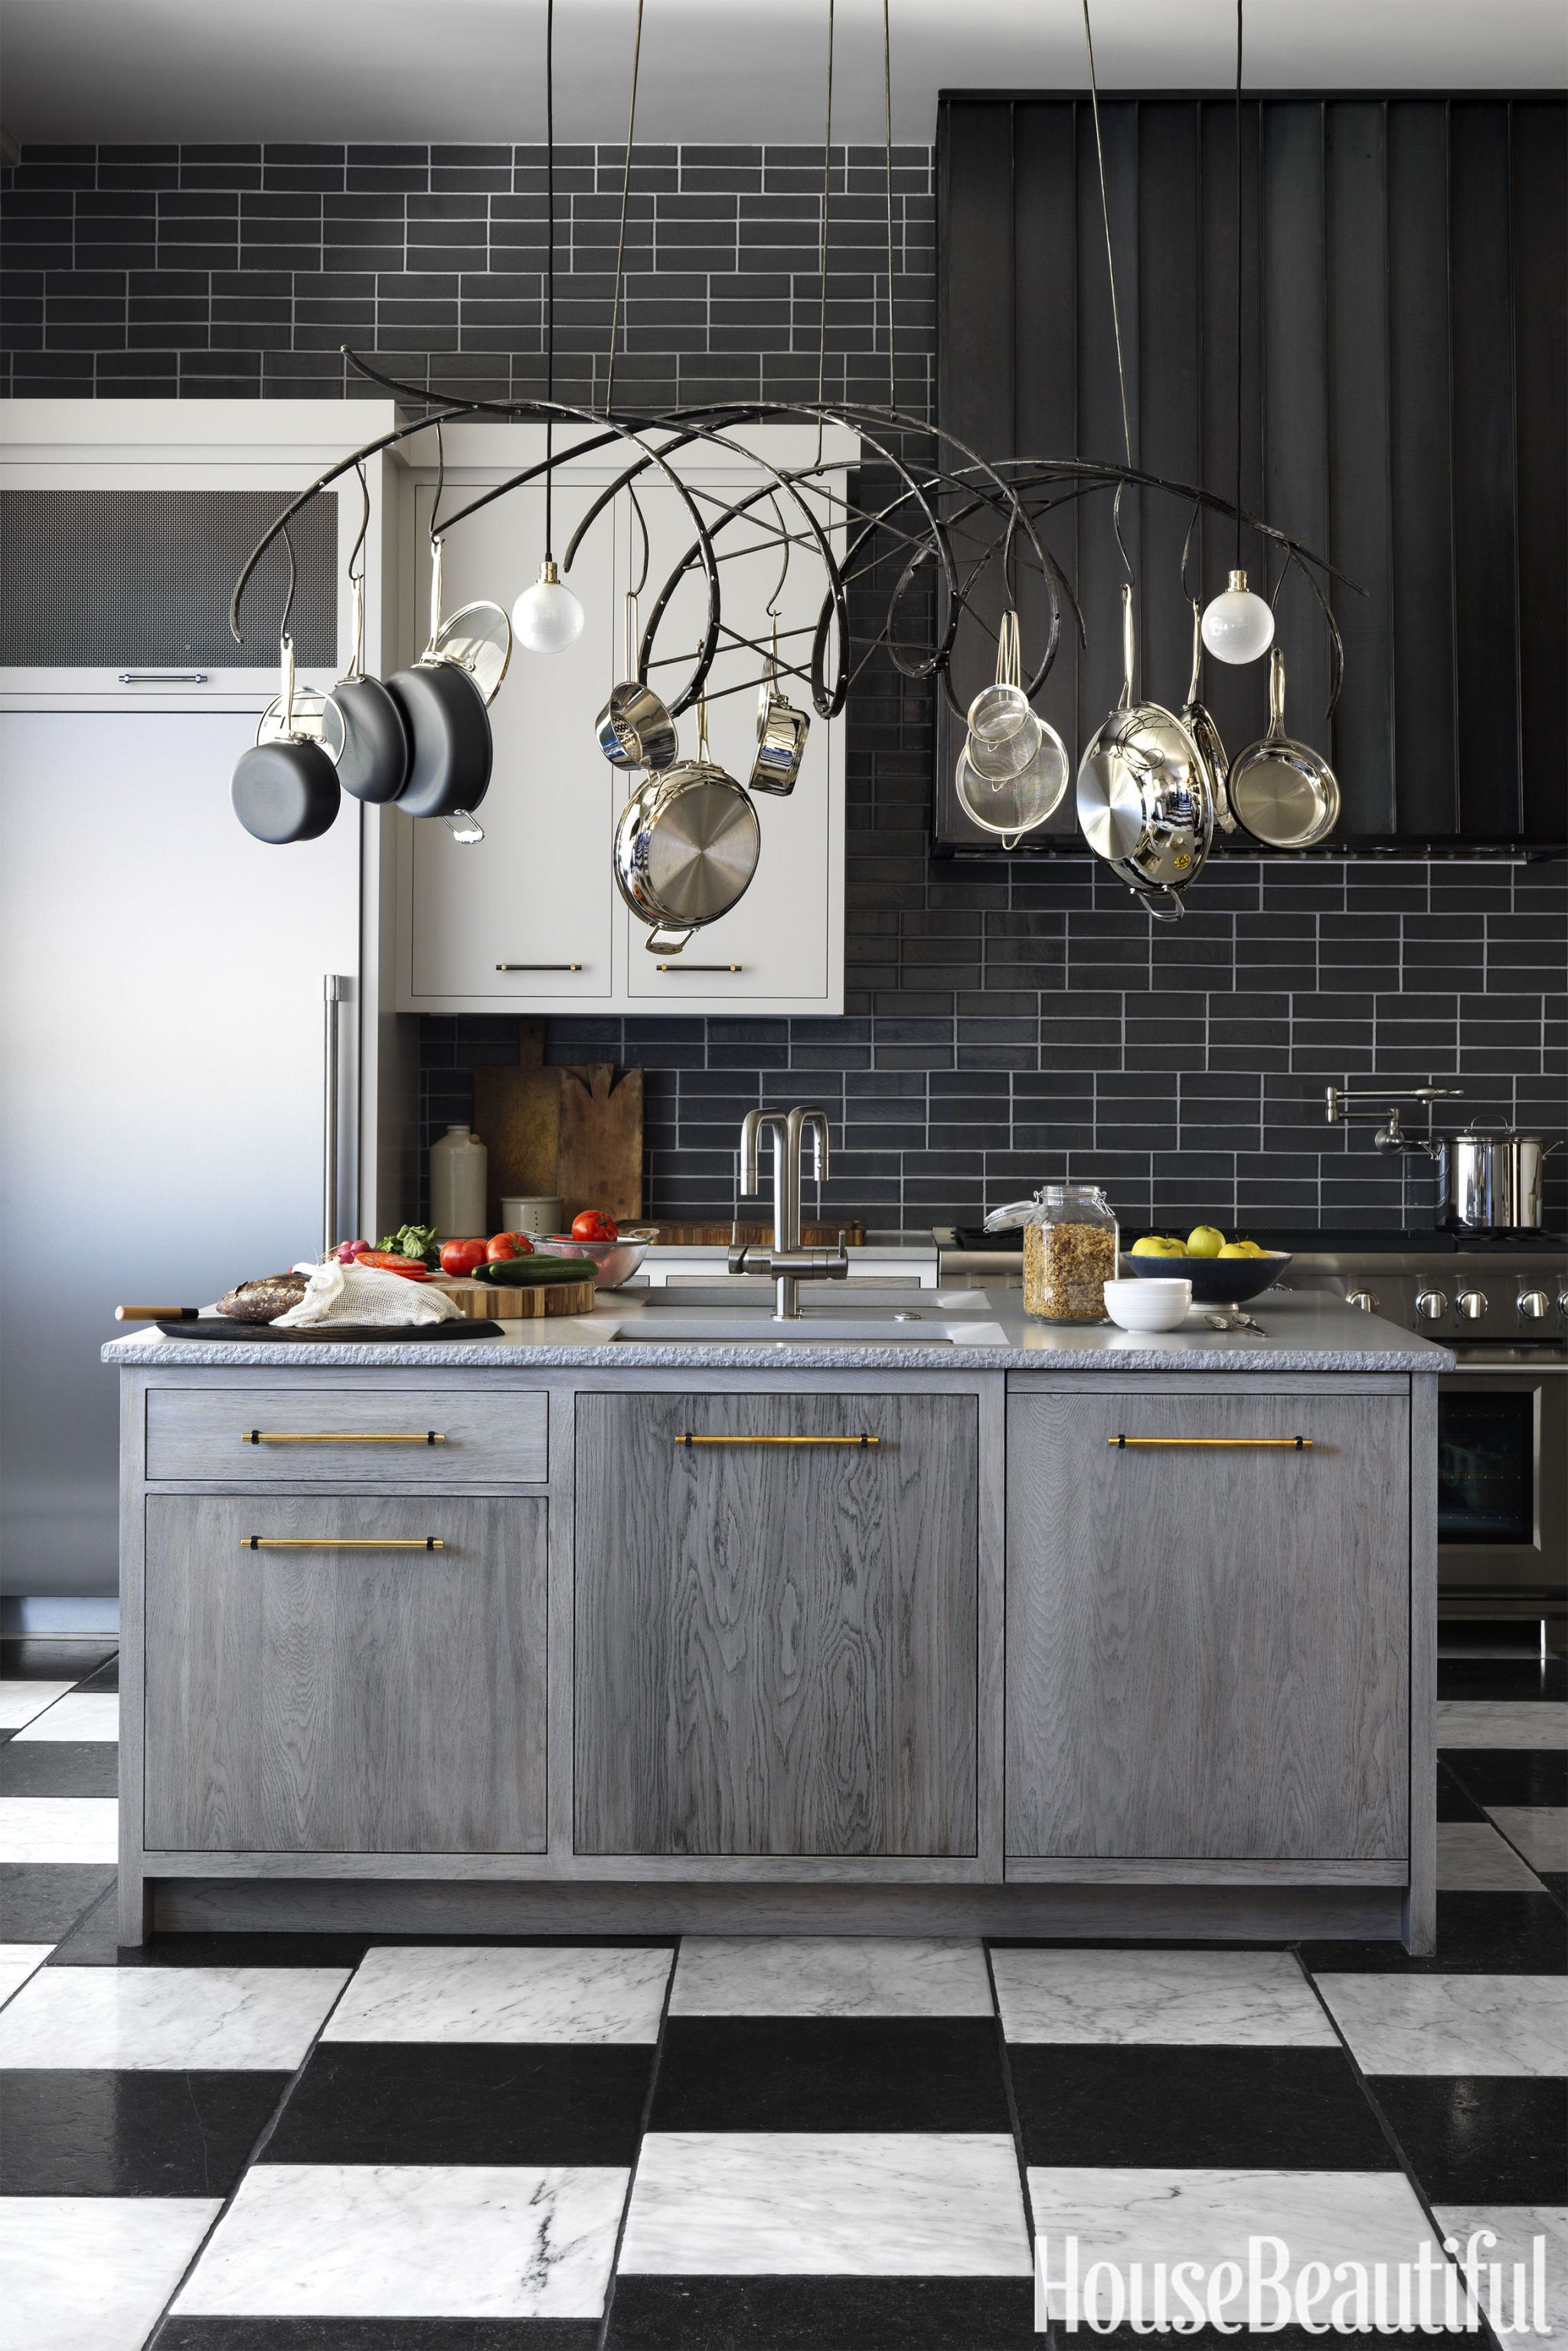 Elegant Jon De La Cruz Kitchen Of The Year Kitchen Island